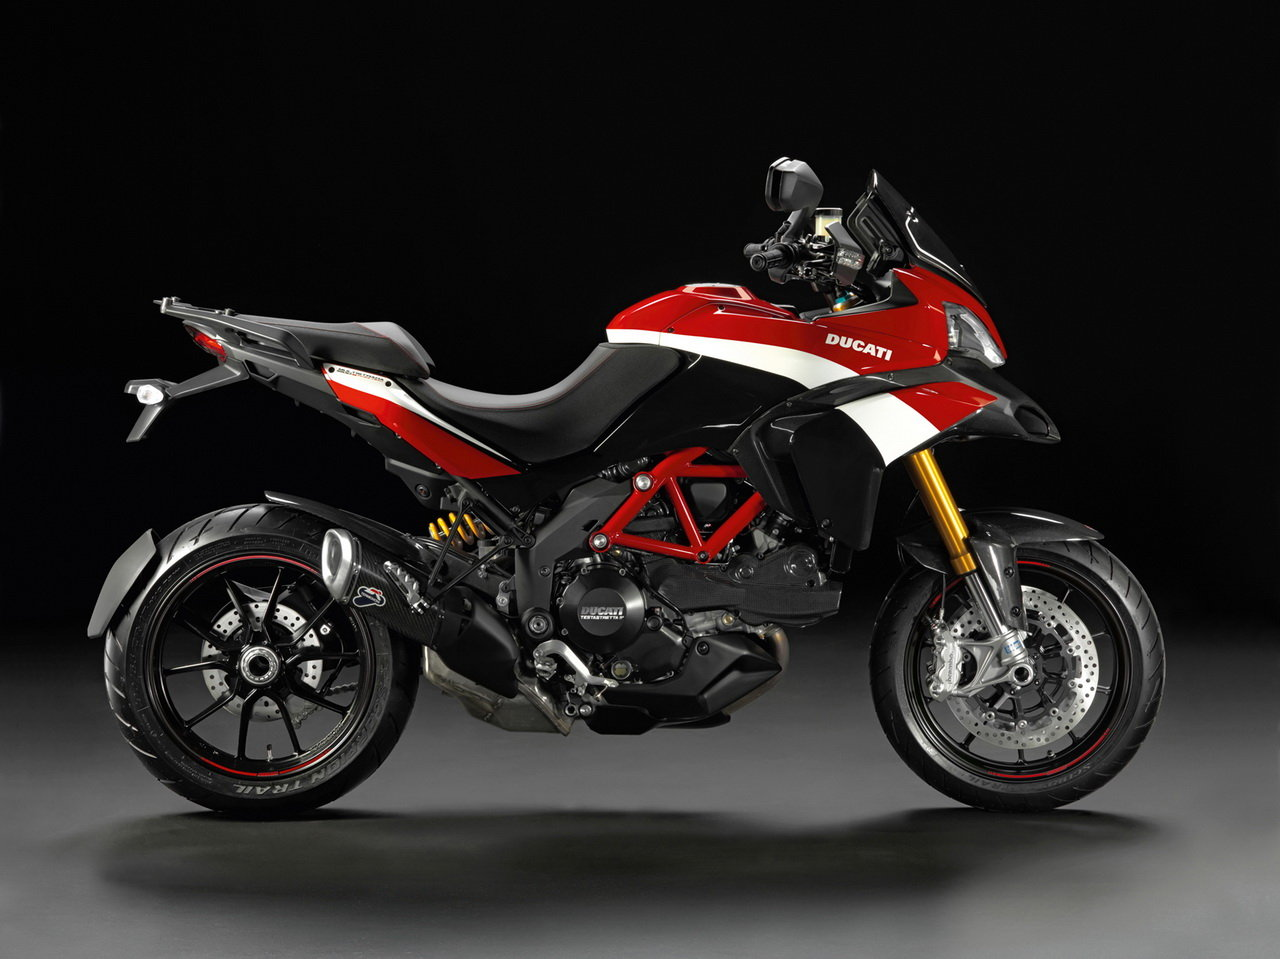 ducati multistrada 1200 s pikes peak special edition. Black Bedroom Furniture Sets. Home Design Ideas